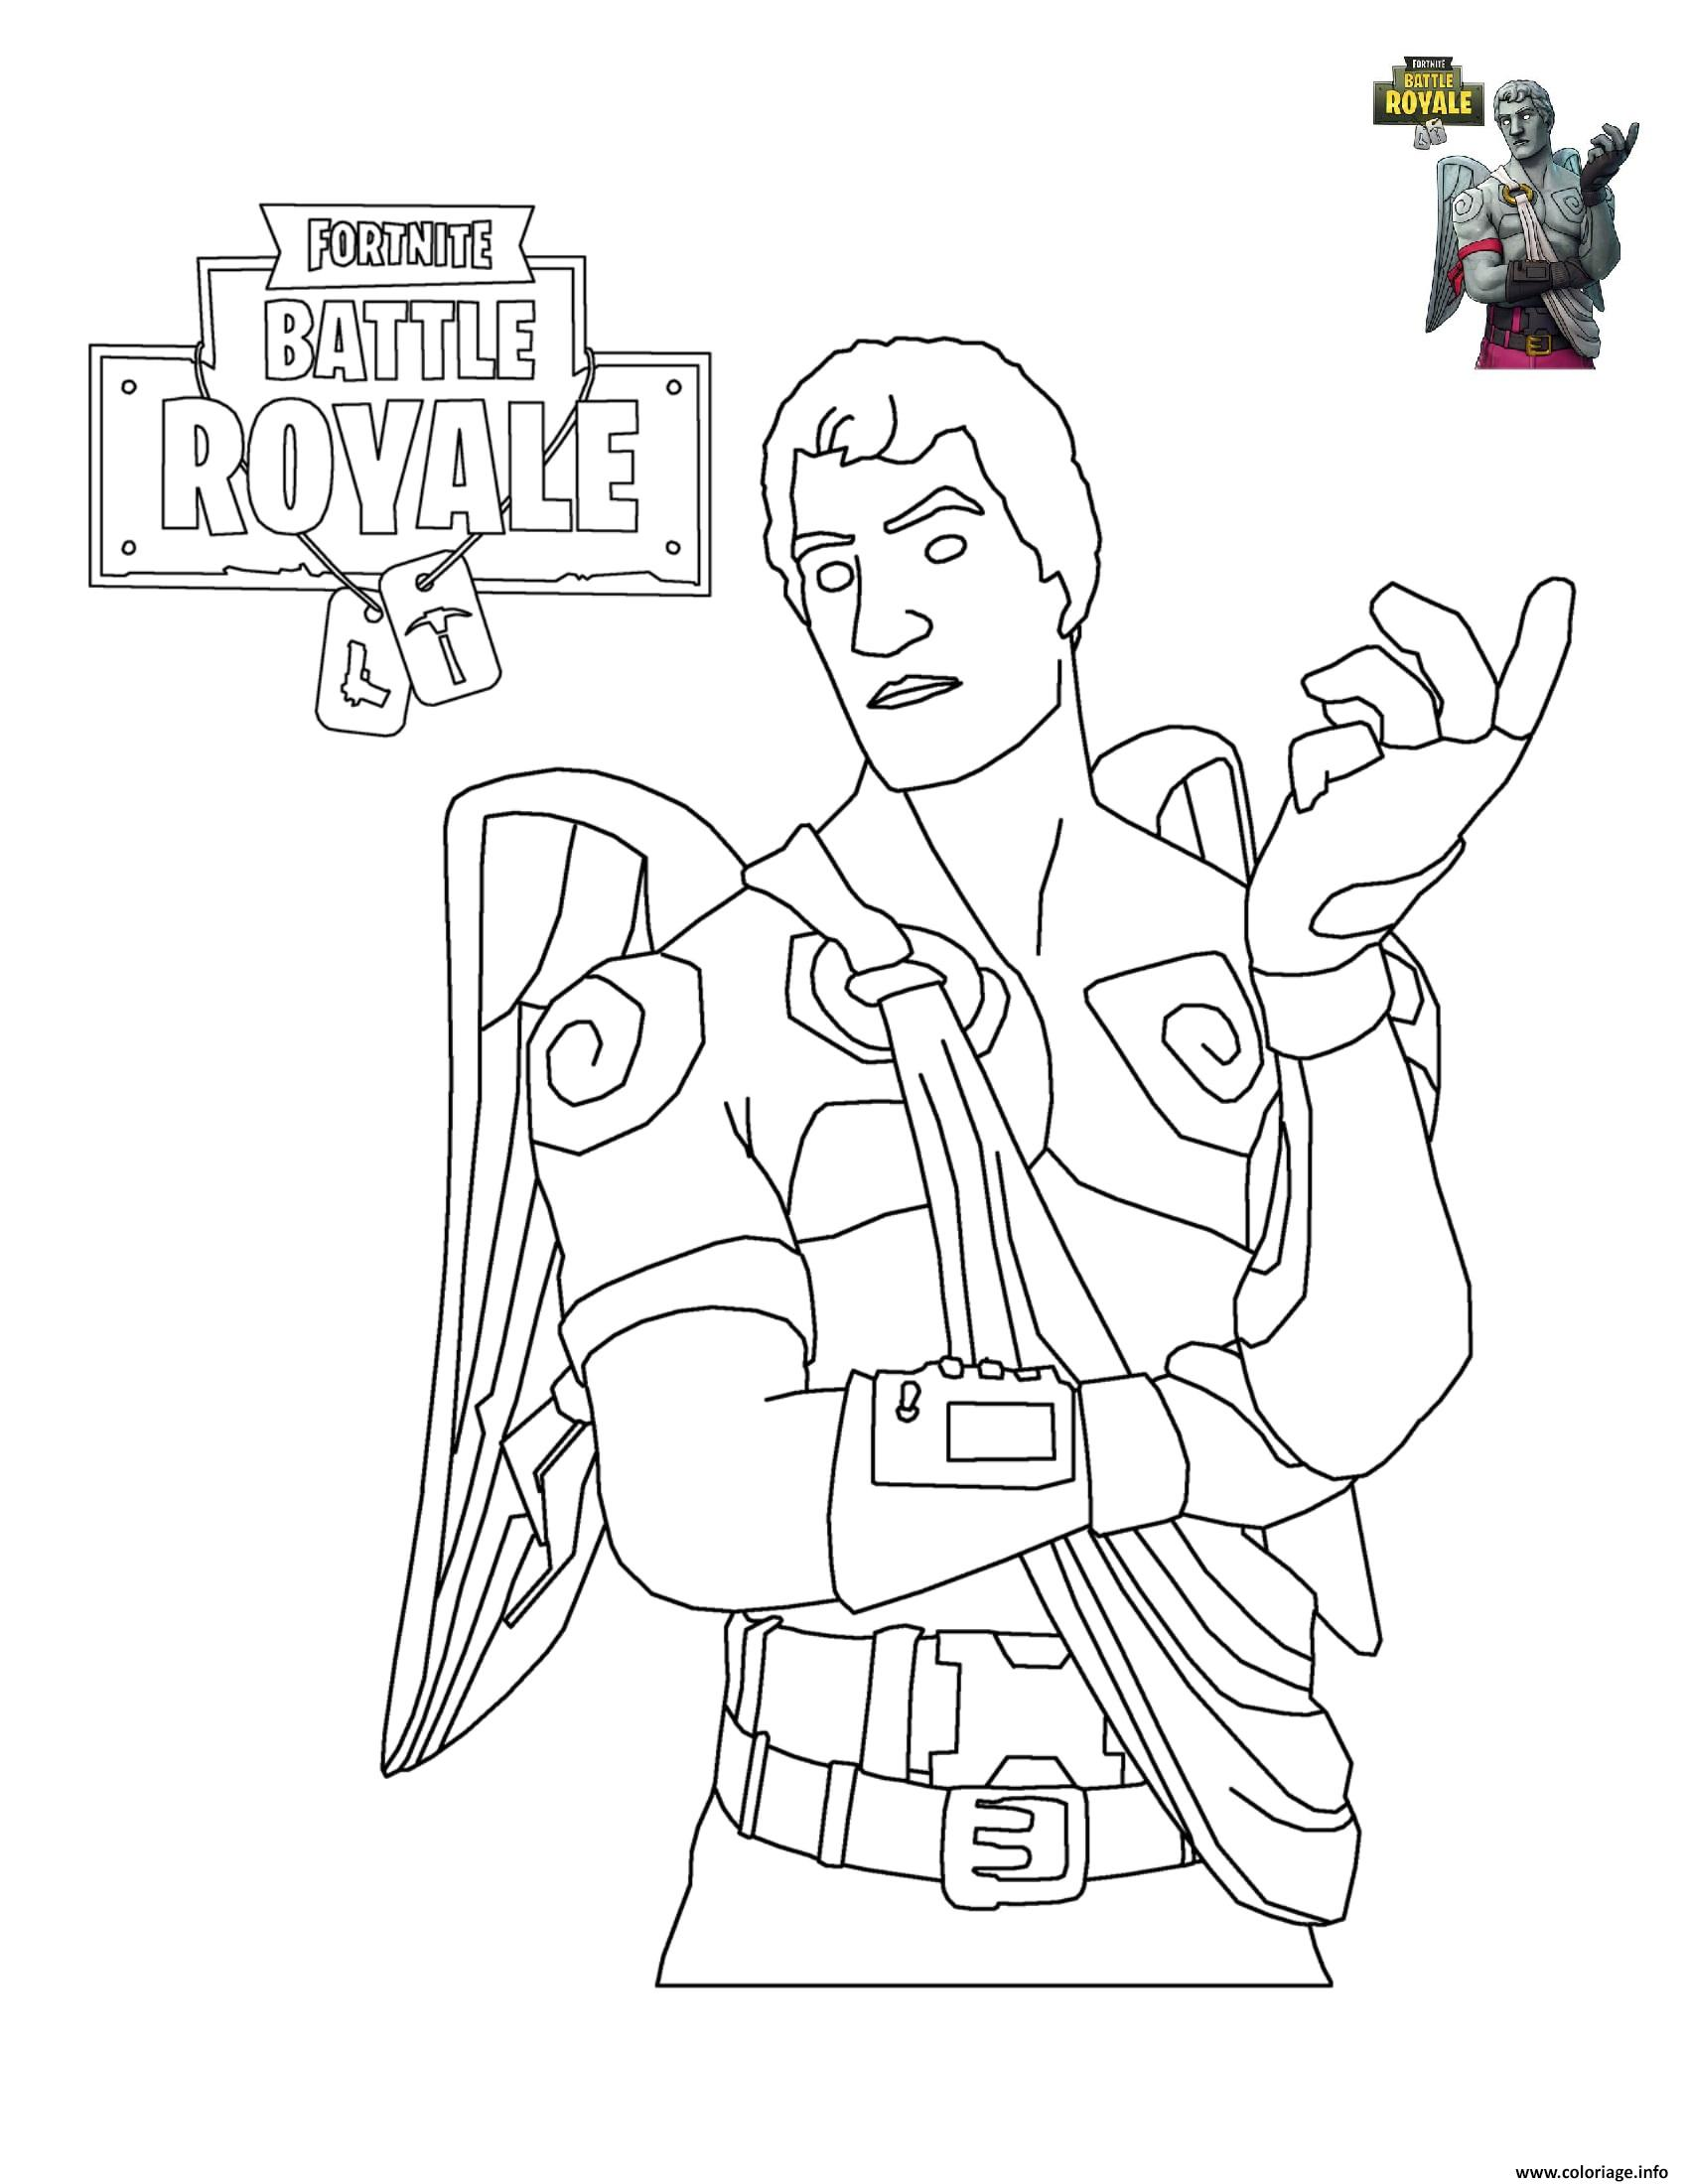 Coloriage fortnite battle royale personnage 6 - Coloriage personnage ...